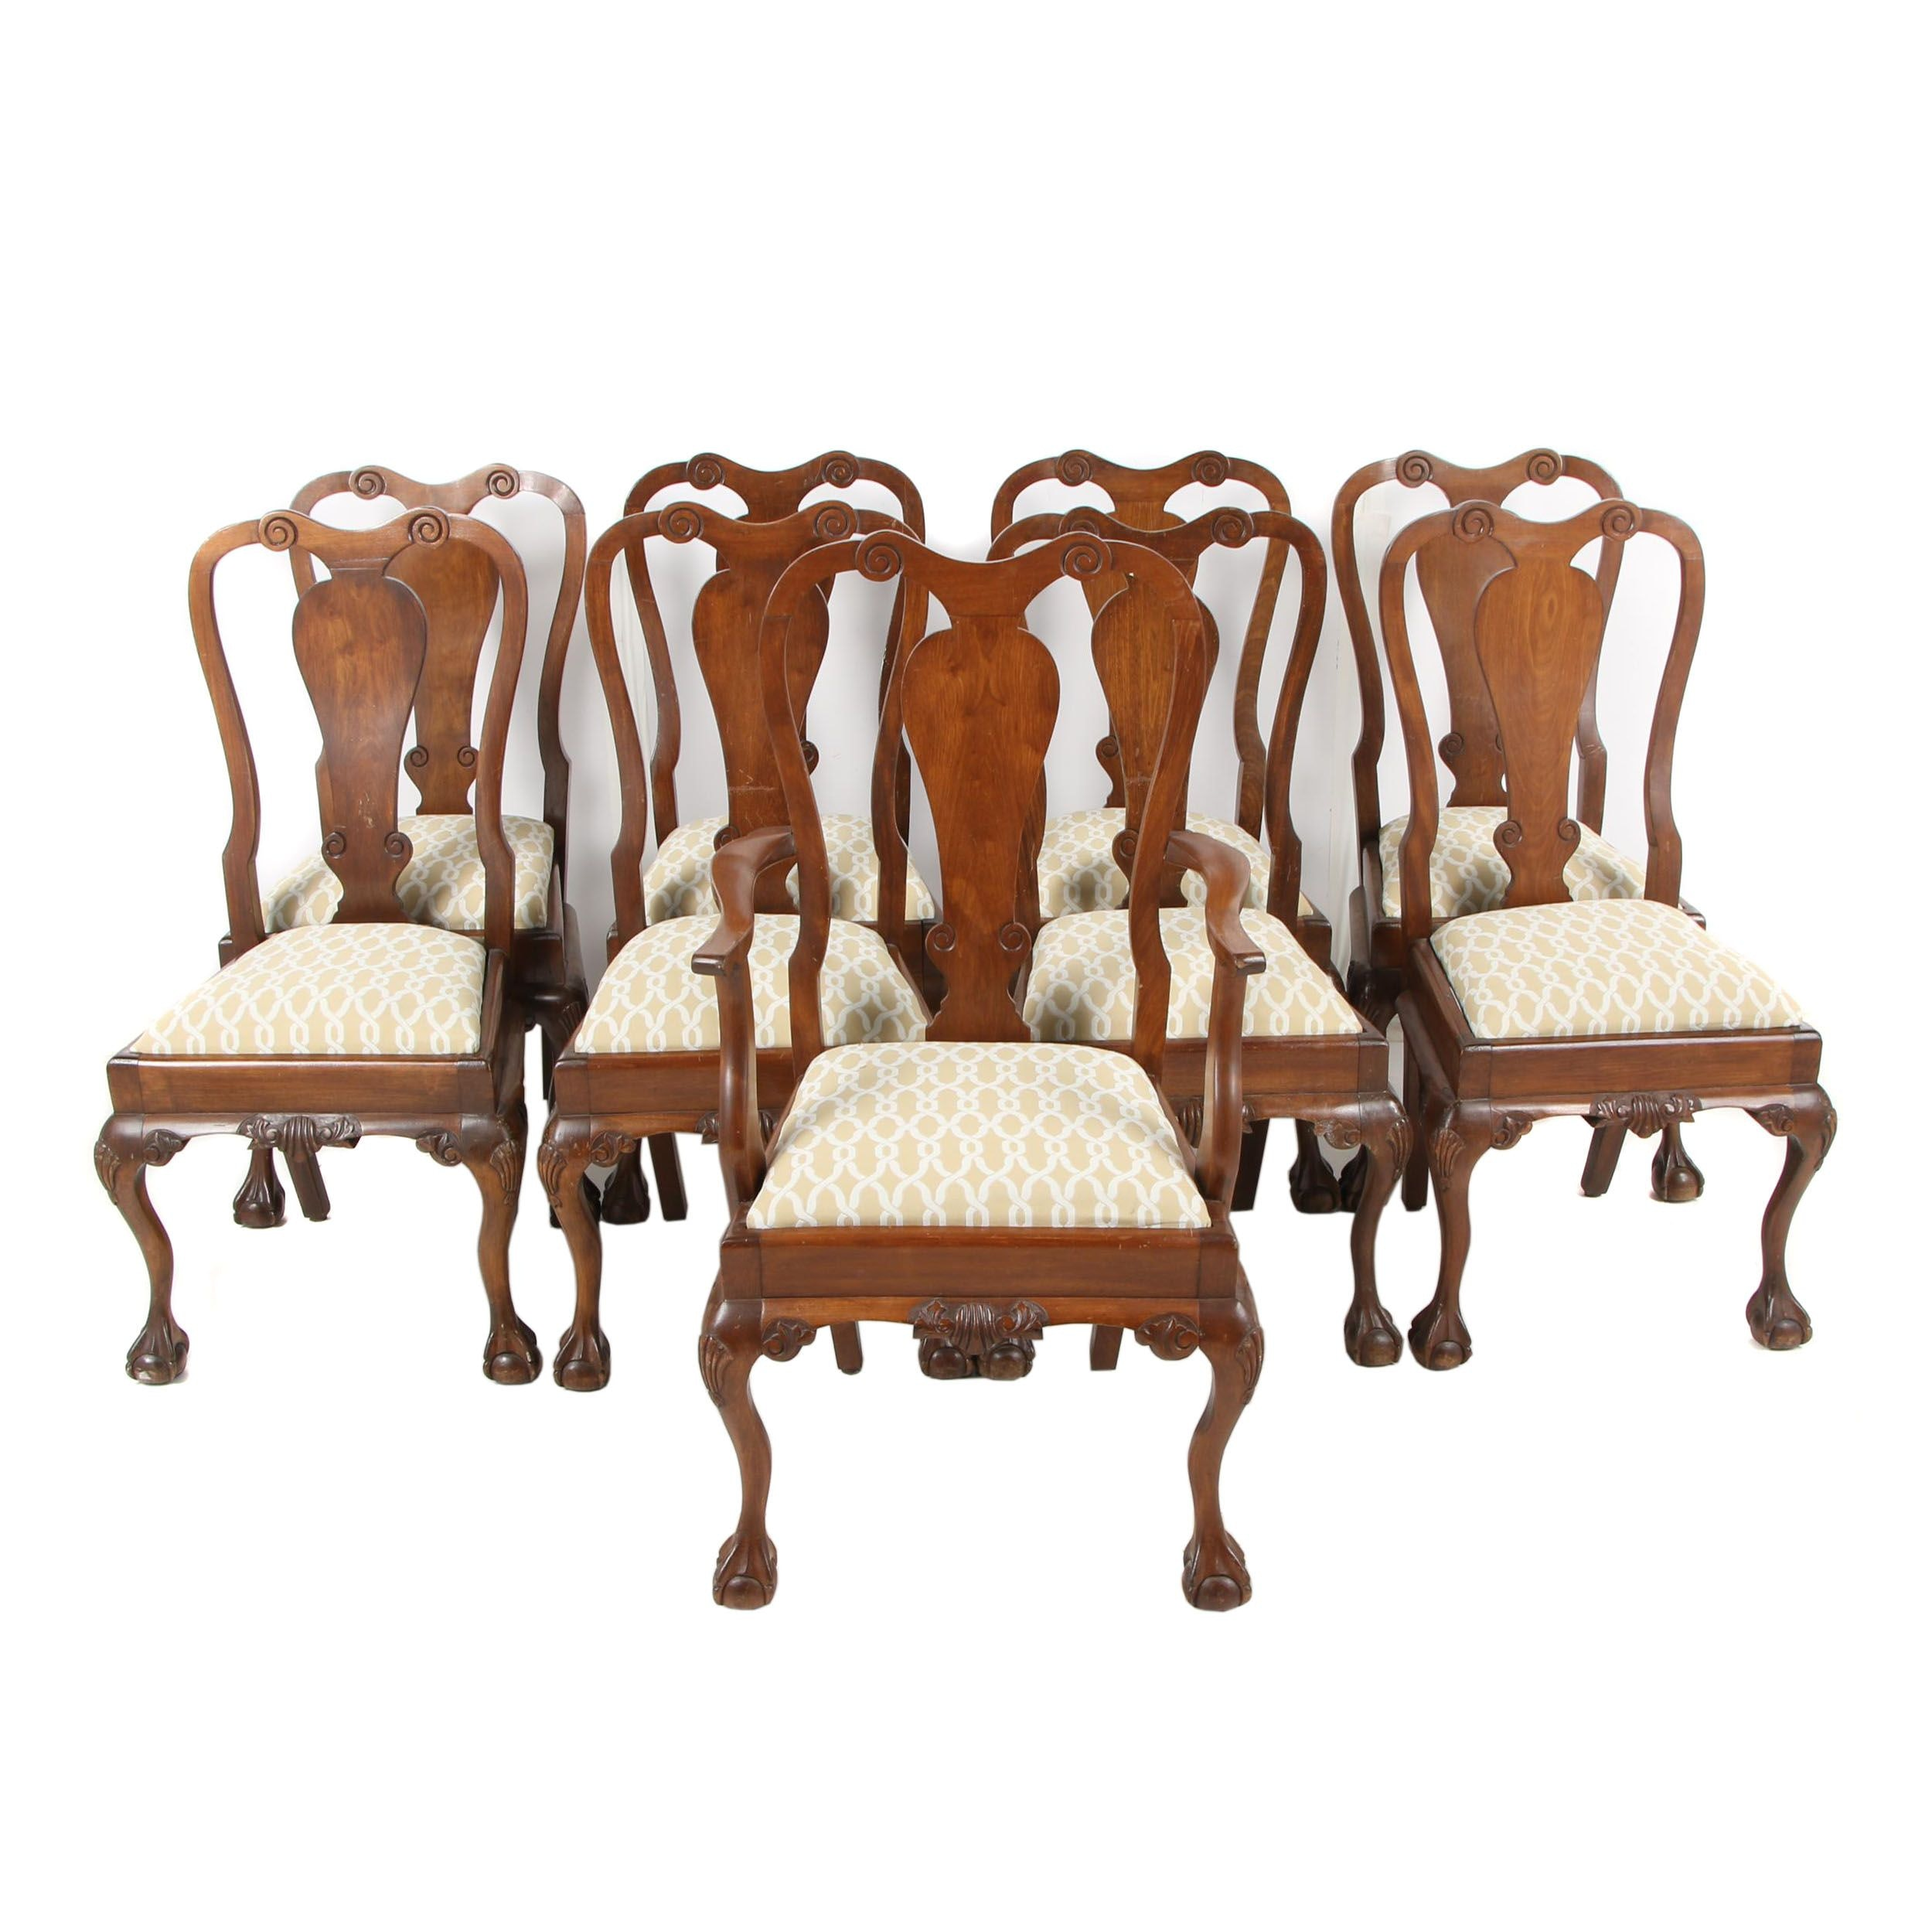 William & Mary Style Dining Chairs with Ball and Claw Feet, 20th Century